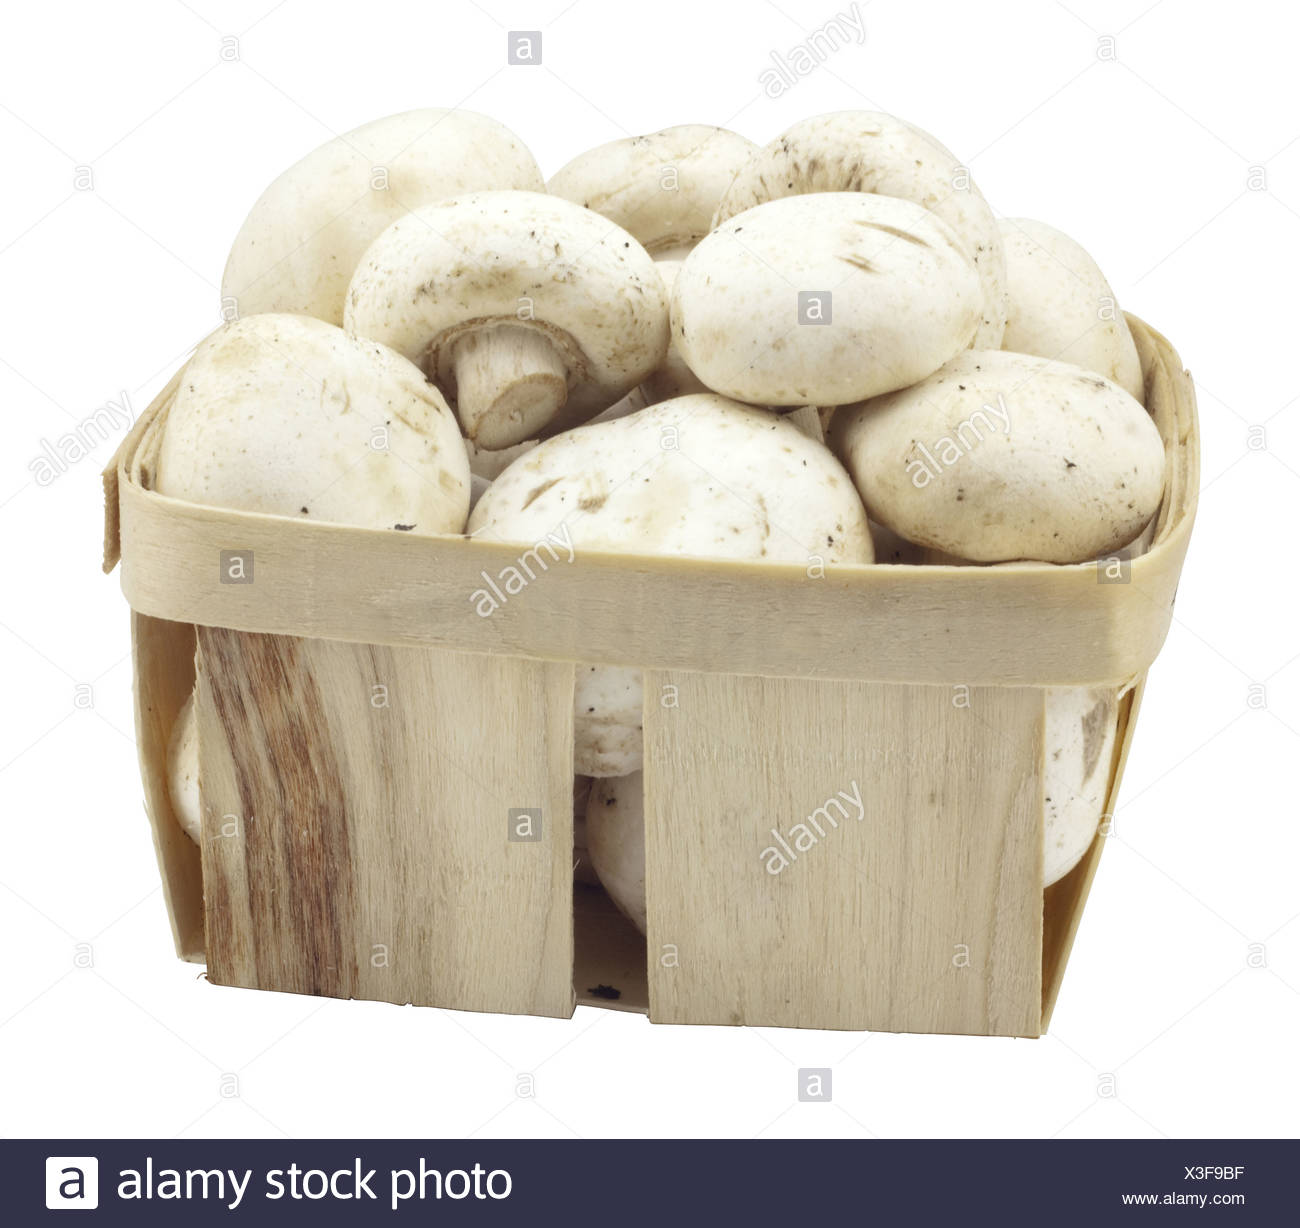 mushrooms in a wooden box - Stock Image